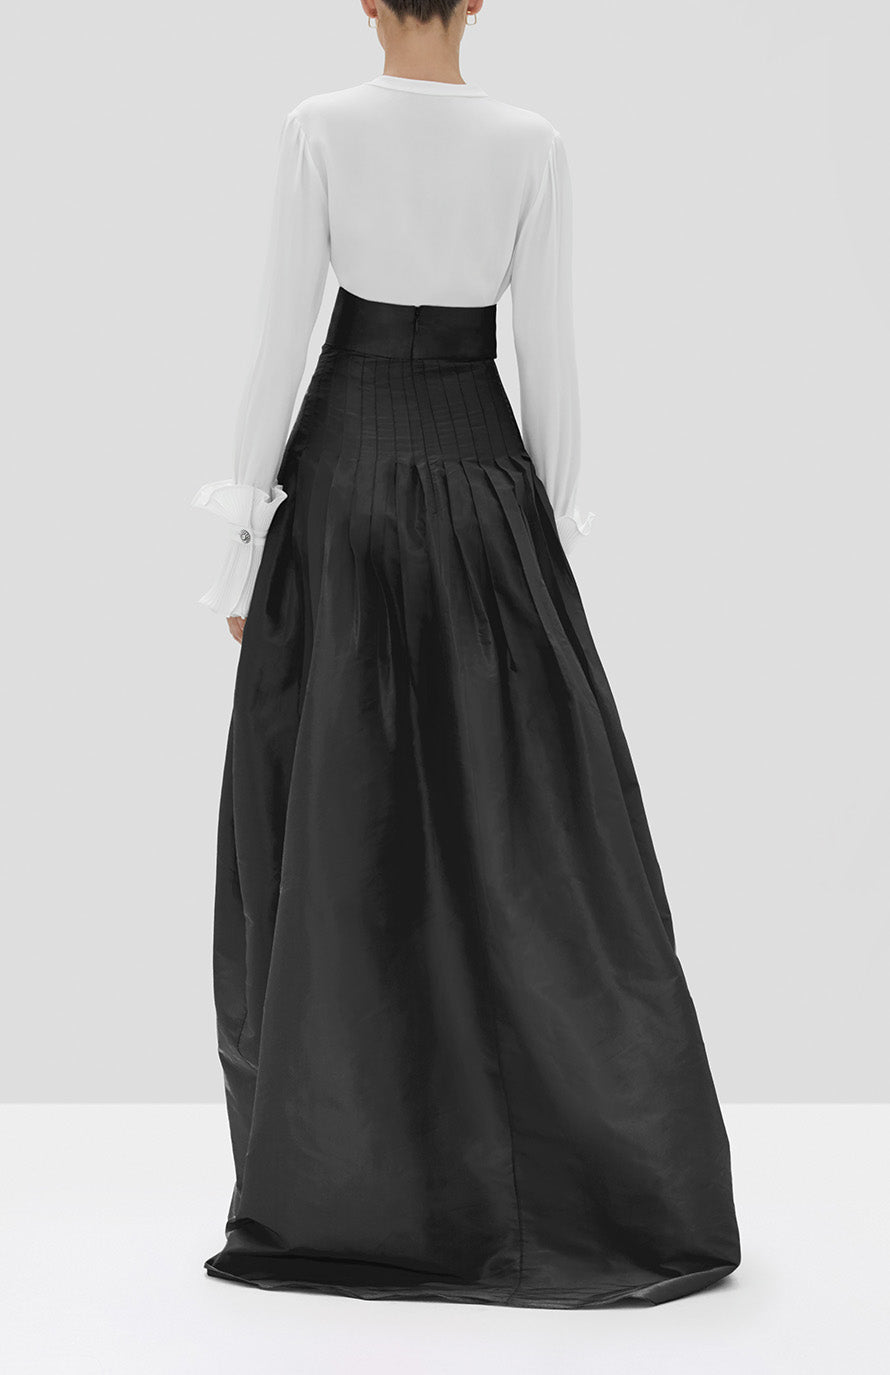 Alexis Valdas Skirt in Black from the Fall Winter 2019 Ready To Wear Collection - Rear View